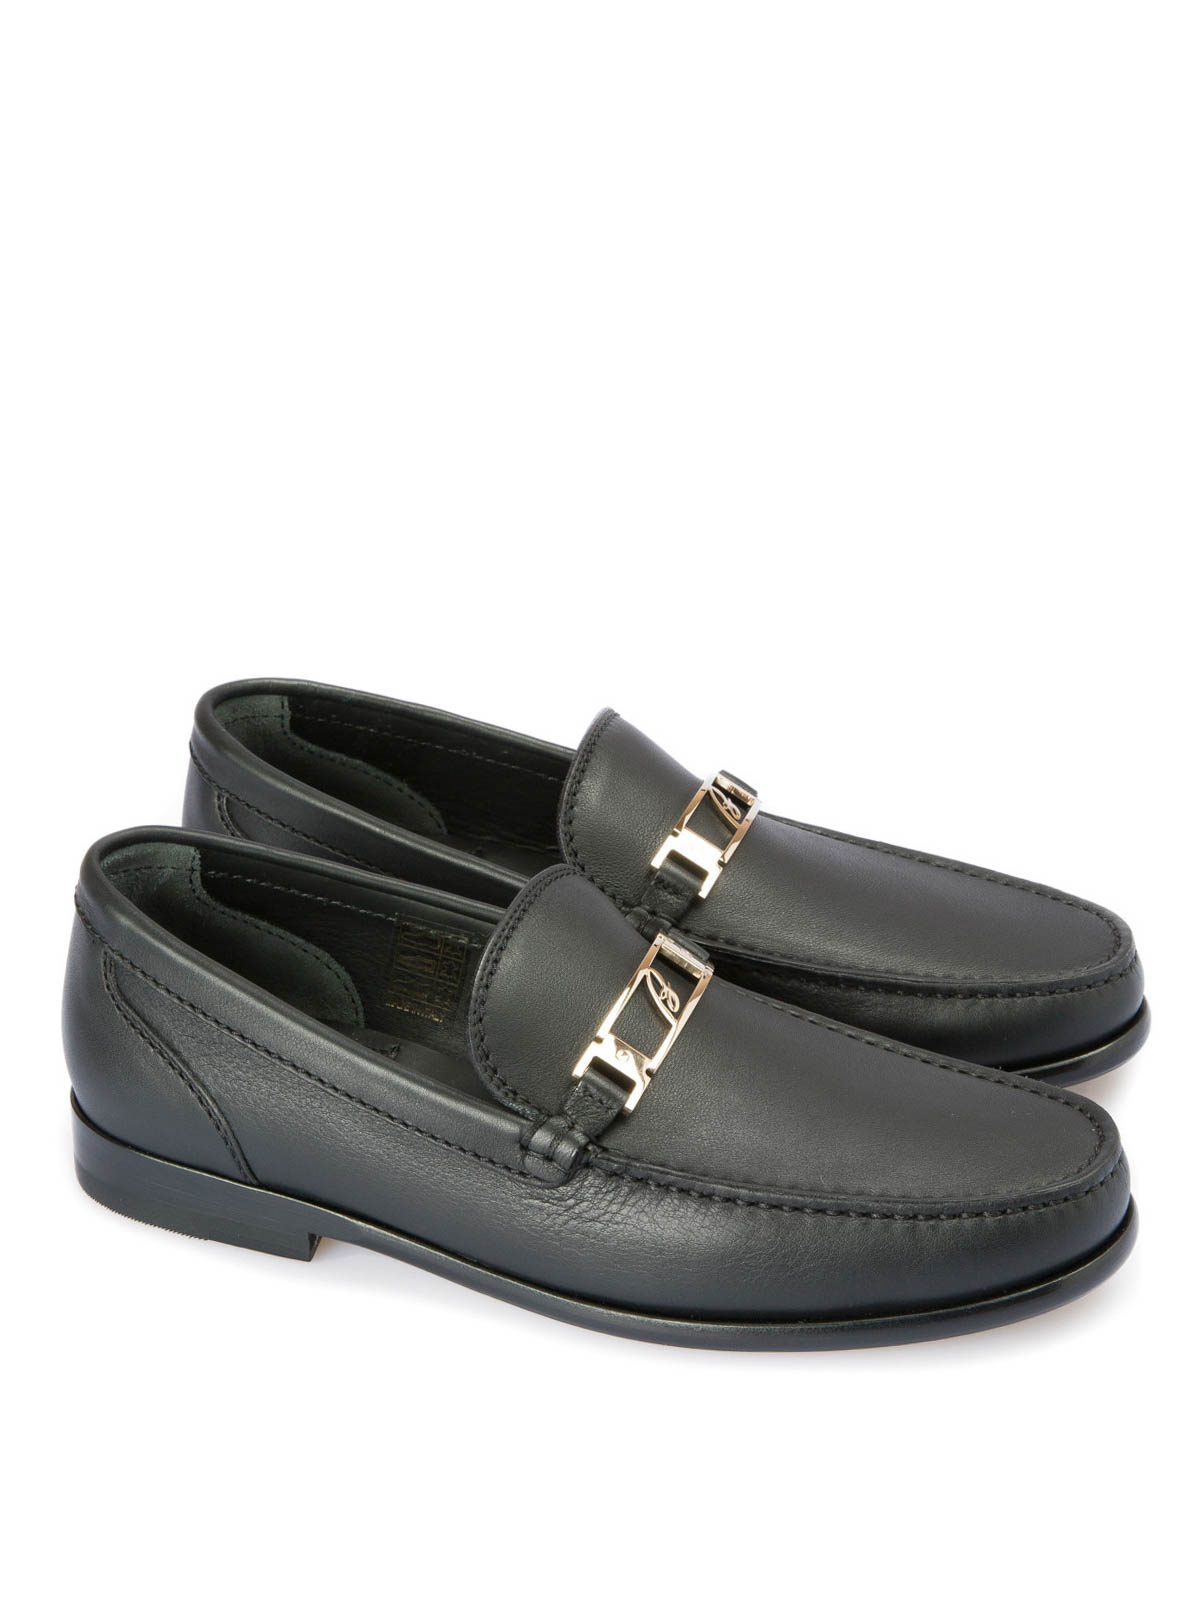 65bbb5a311d621 Brioni - Leather loafers - Loafers   Slippers - QYL70Q P5718 1000